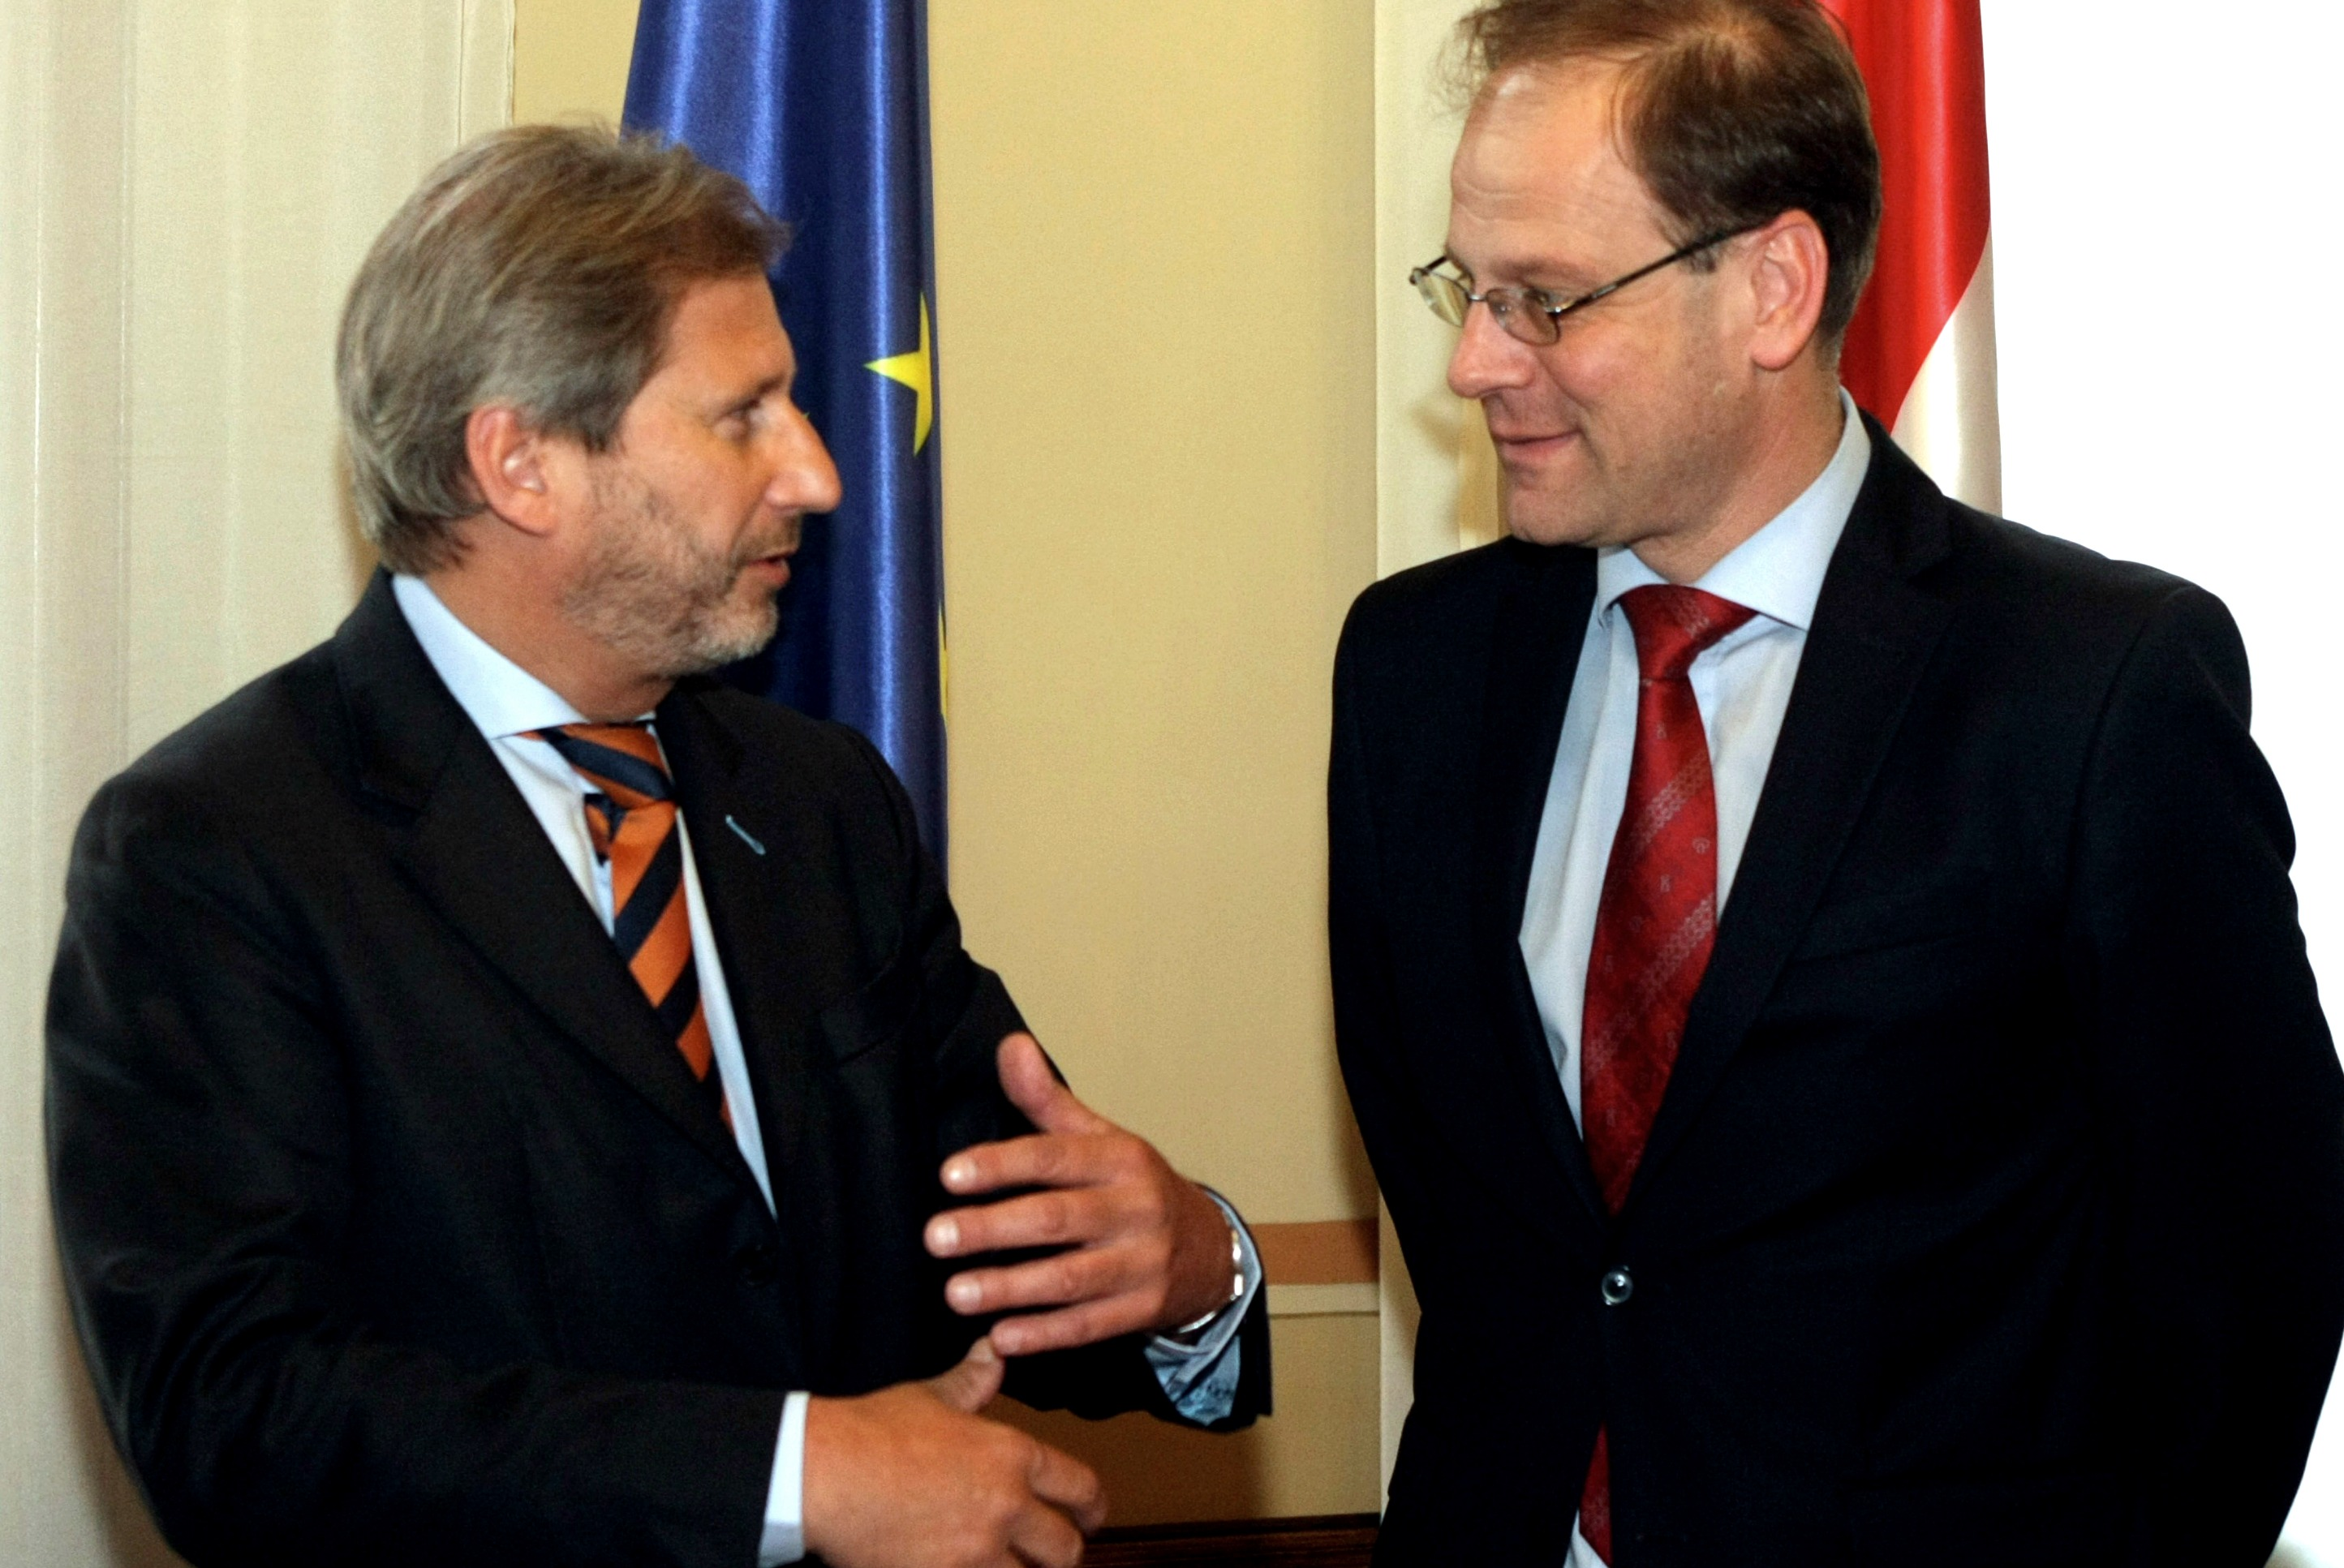 Tibor Navracsics (right) talking to Johannes Hahn, Austrian EU Commissioner [European Commission]